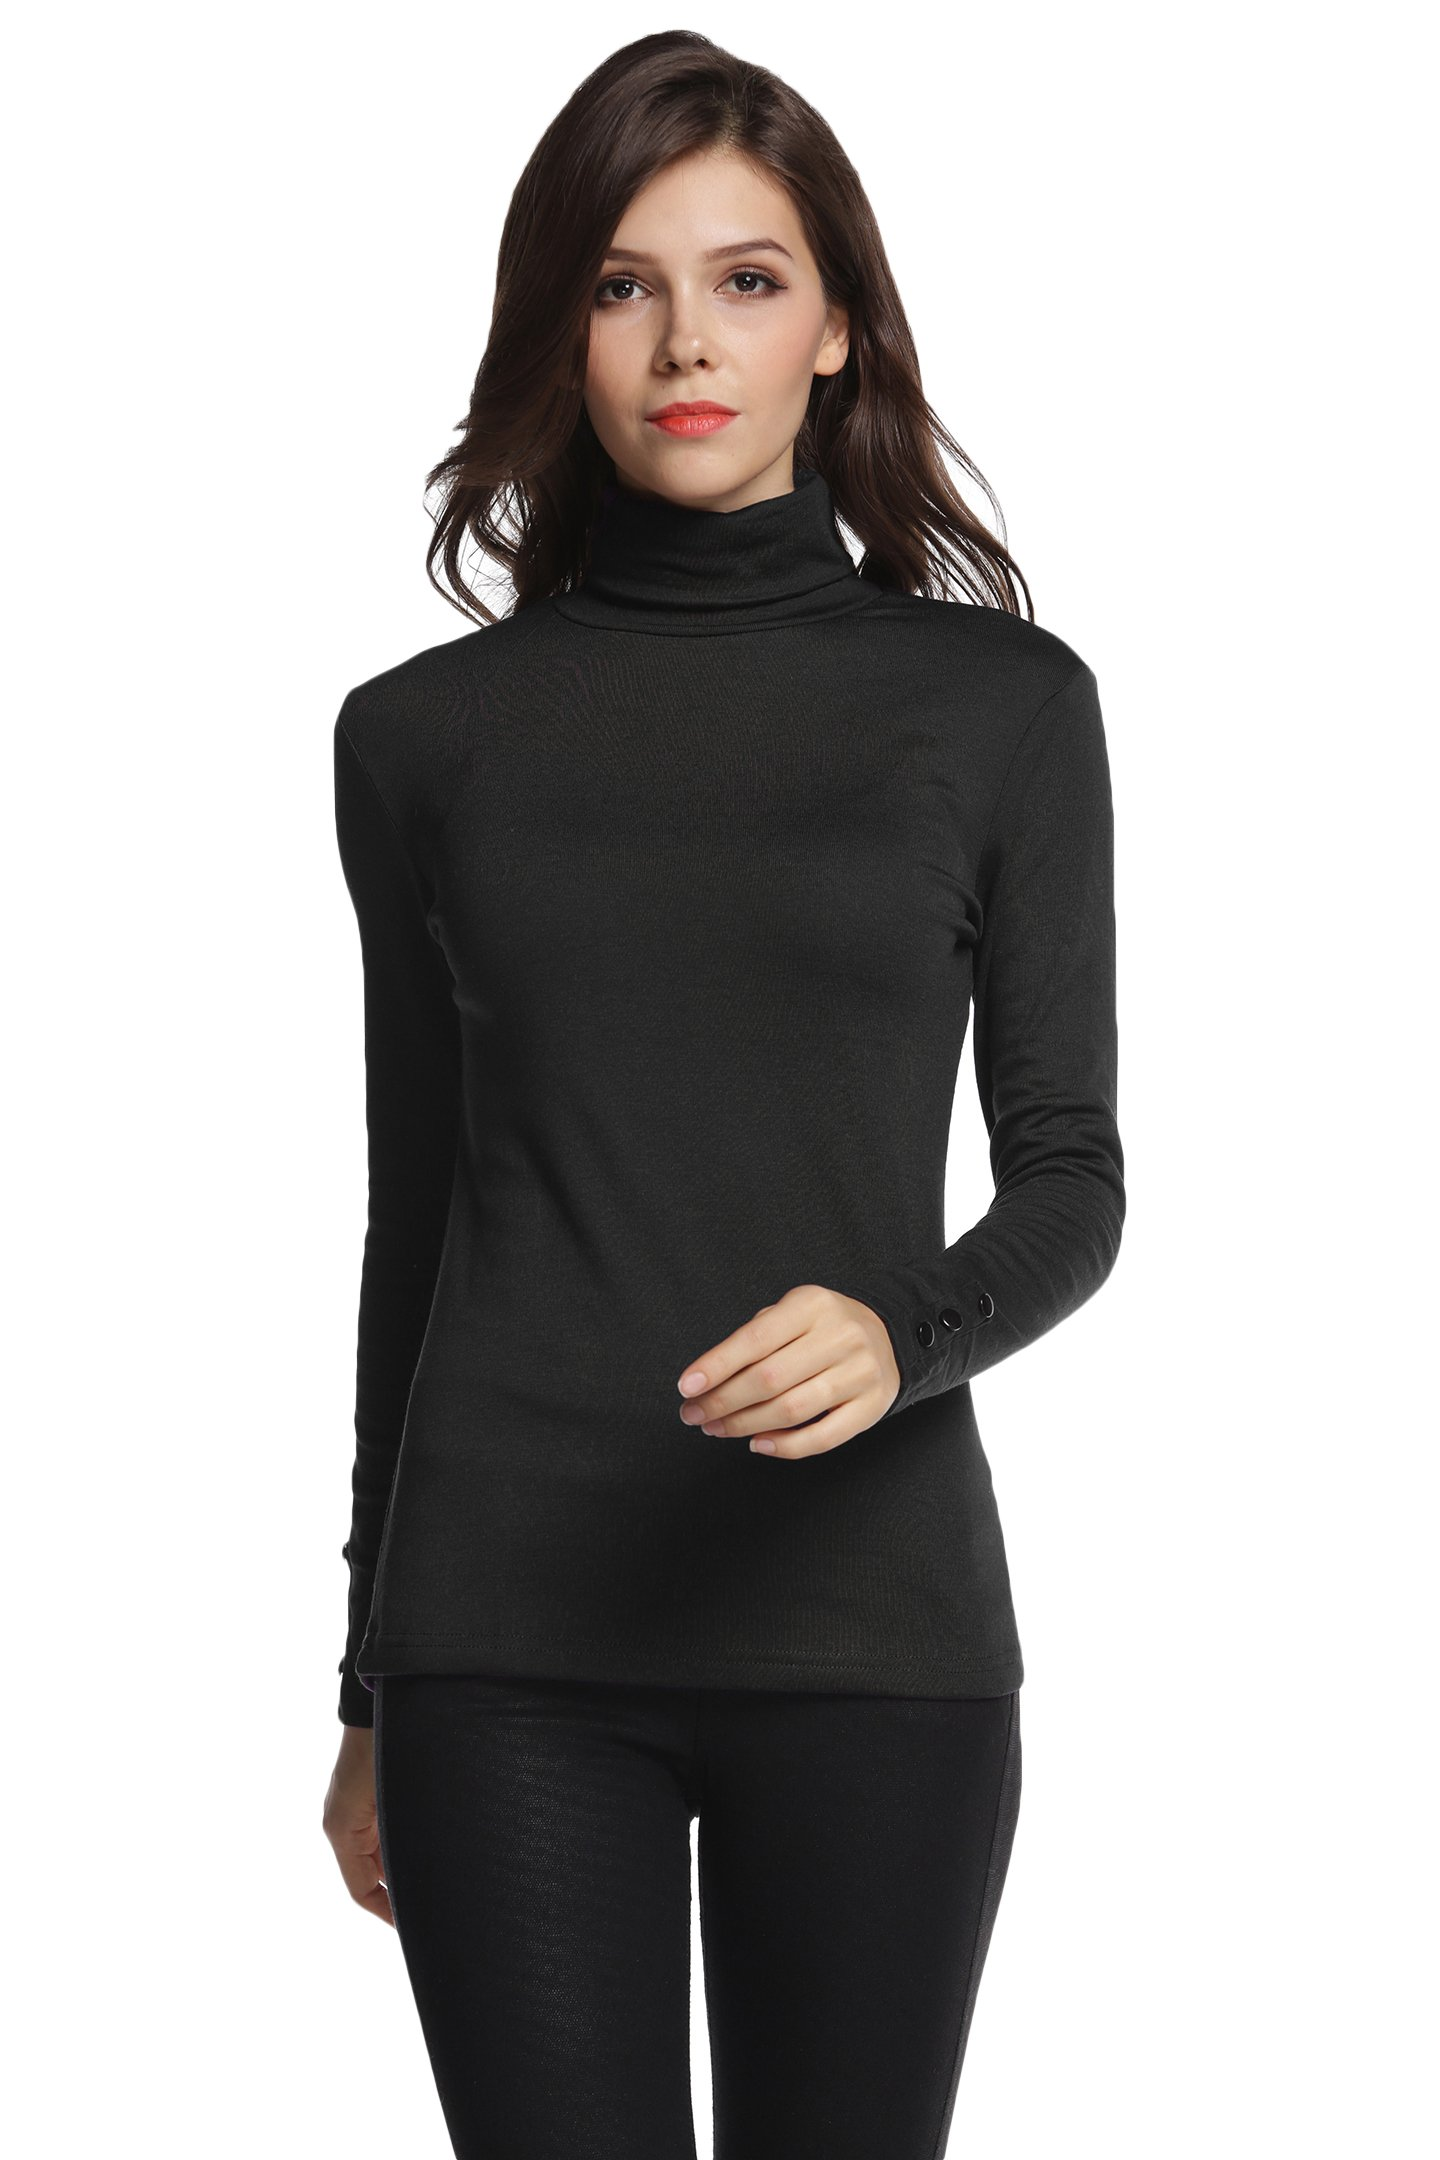 Sofishie Long Sleeve Shirt with Turtle-Neck - Black - Large